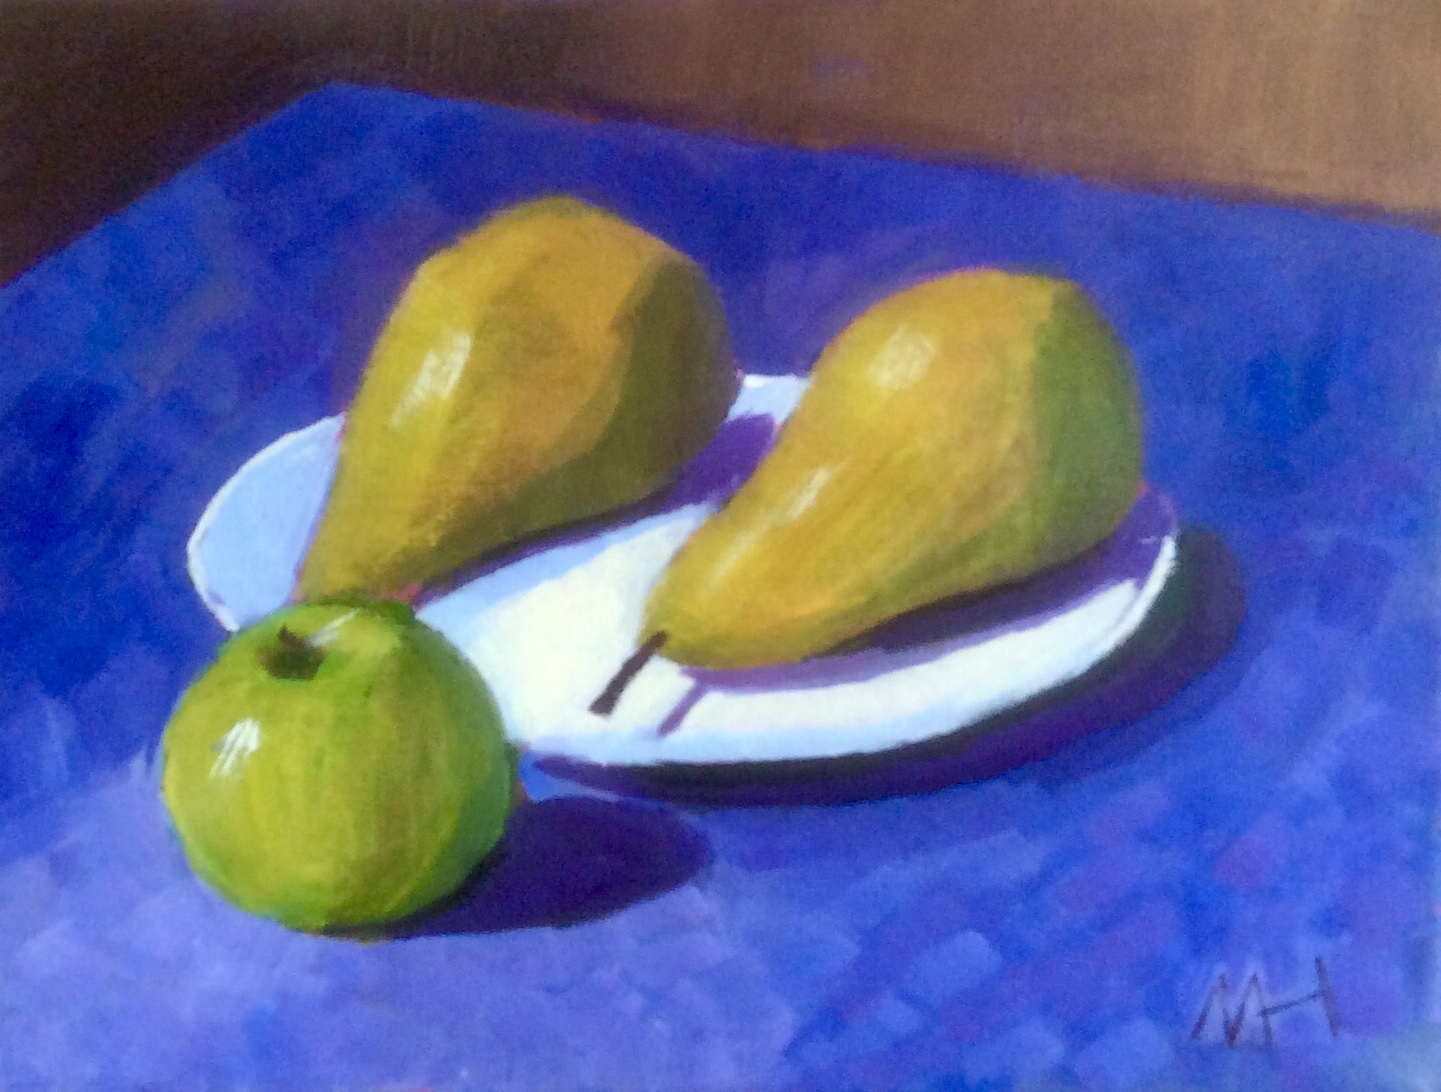 Apple with two pears